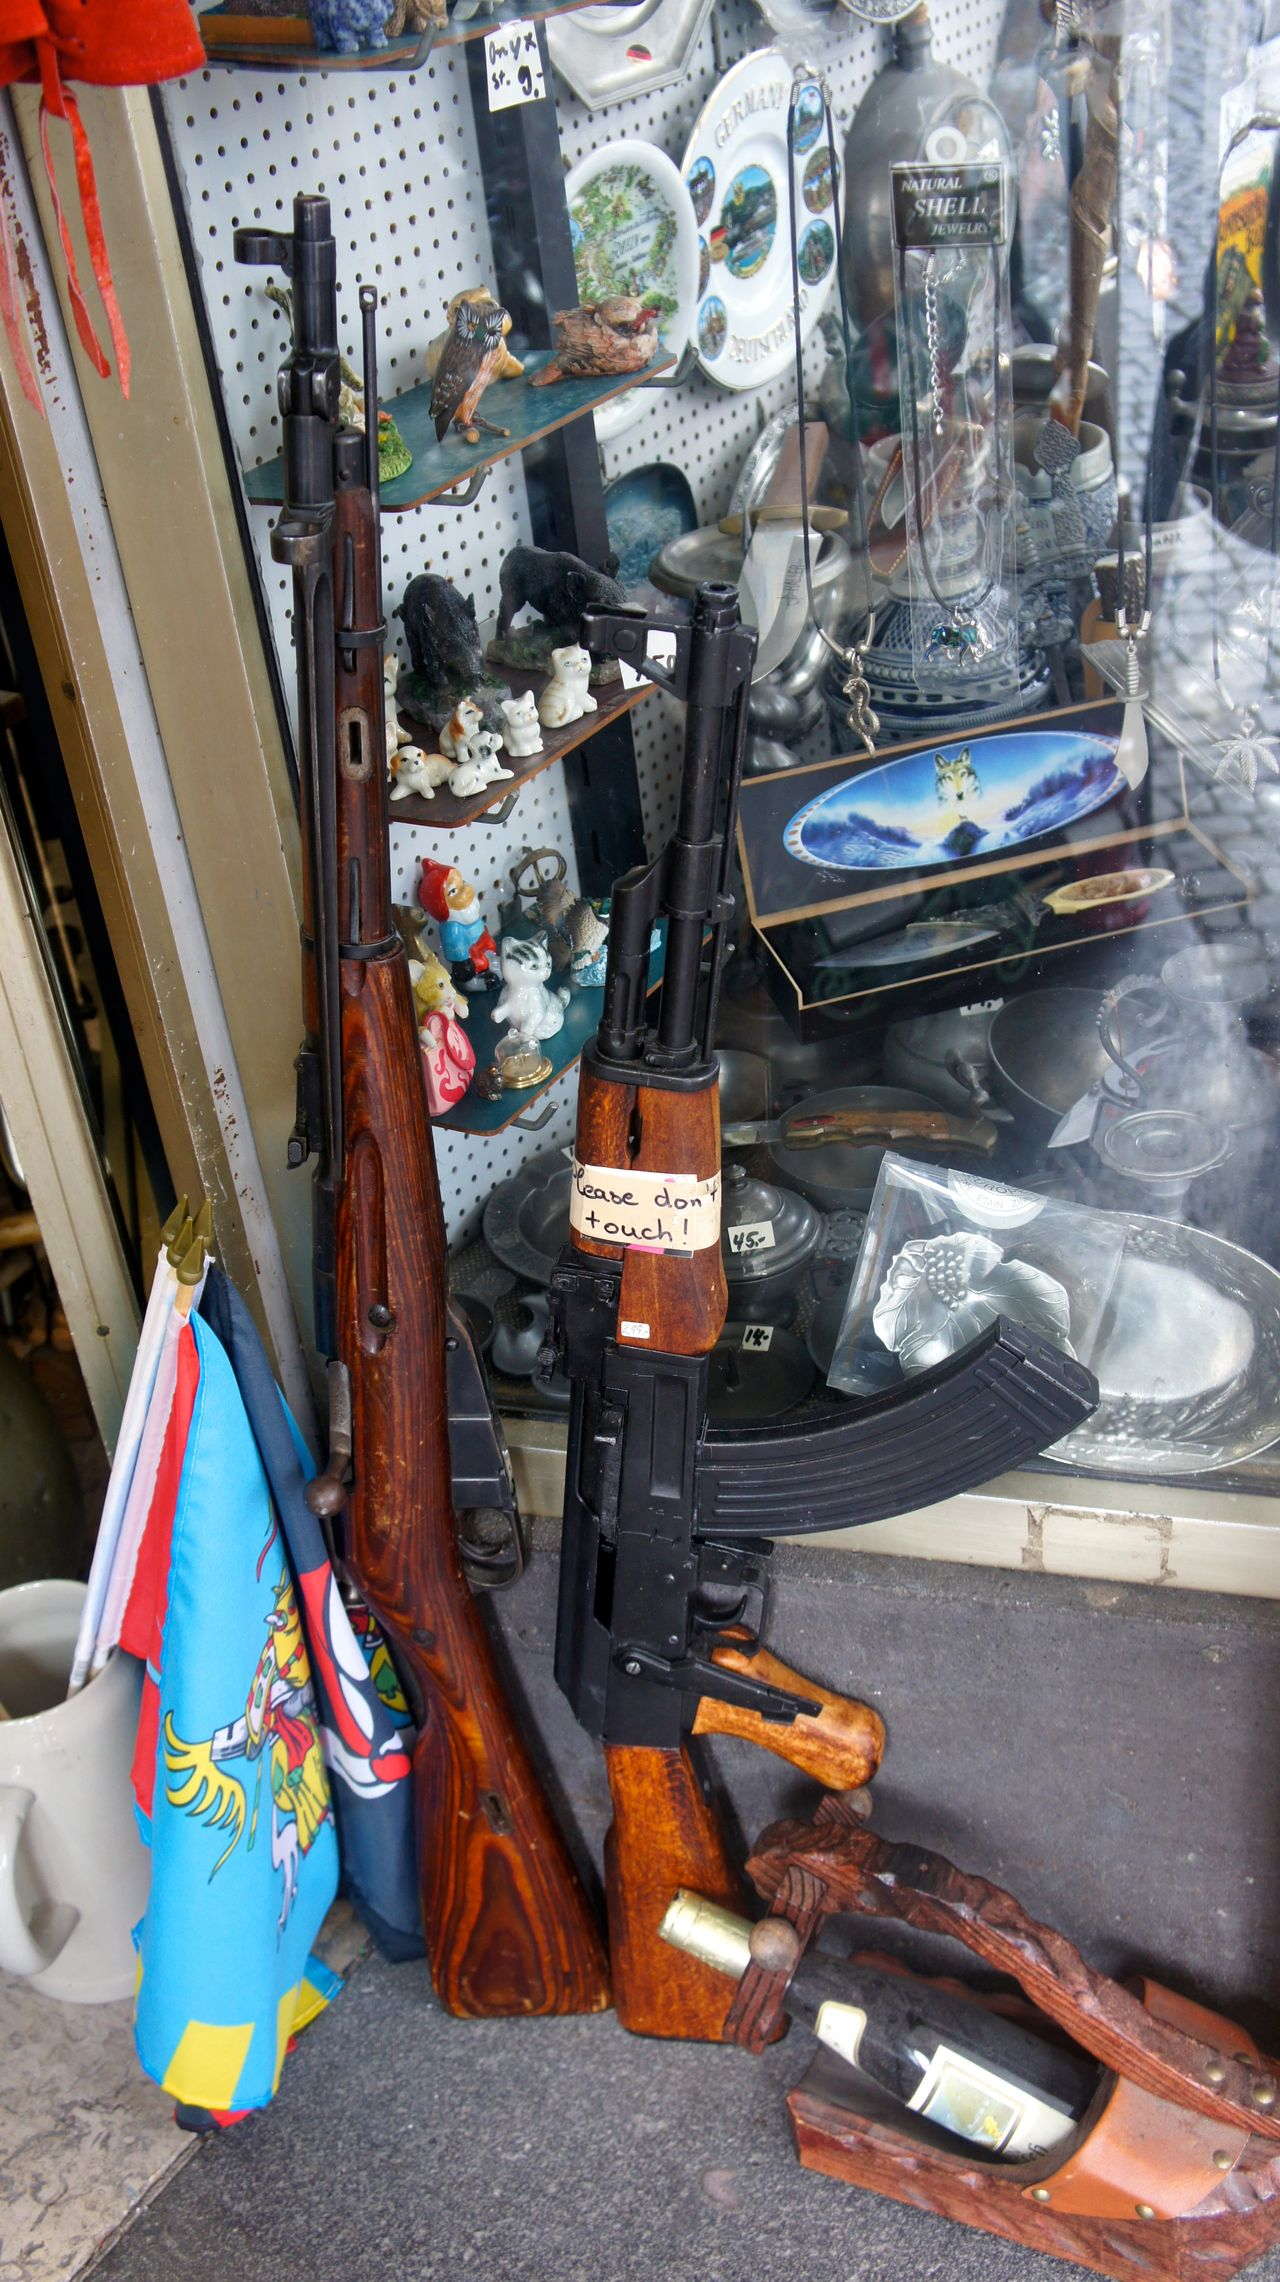 AK 47 Day Doorway No People Outdoors Rifle Shop Window Vertical